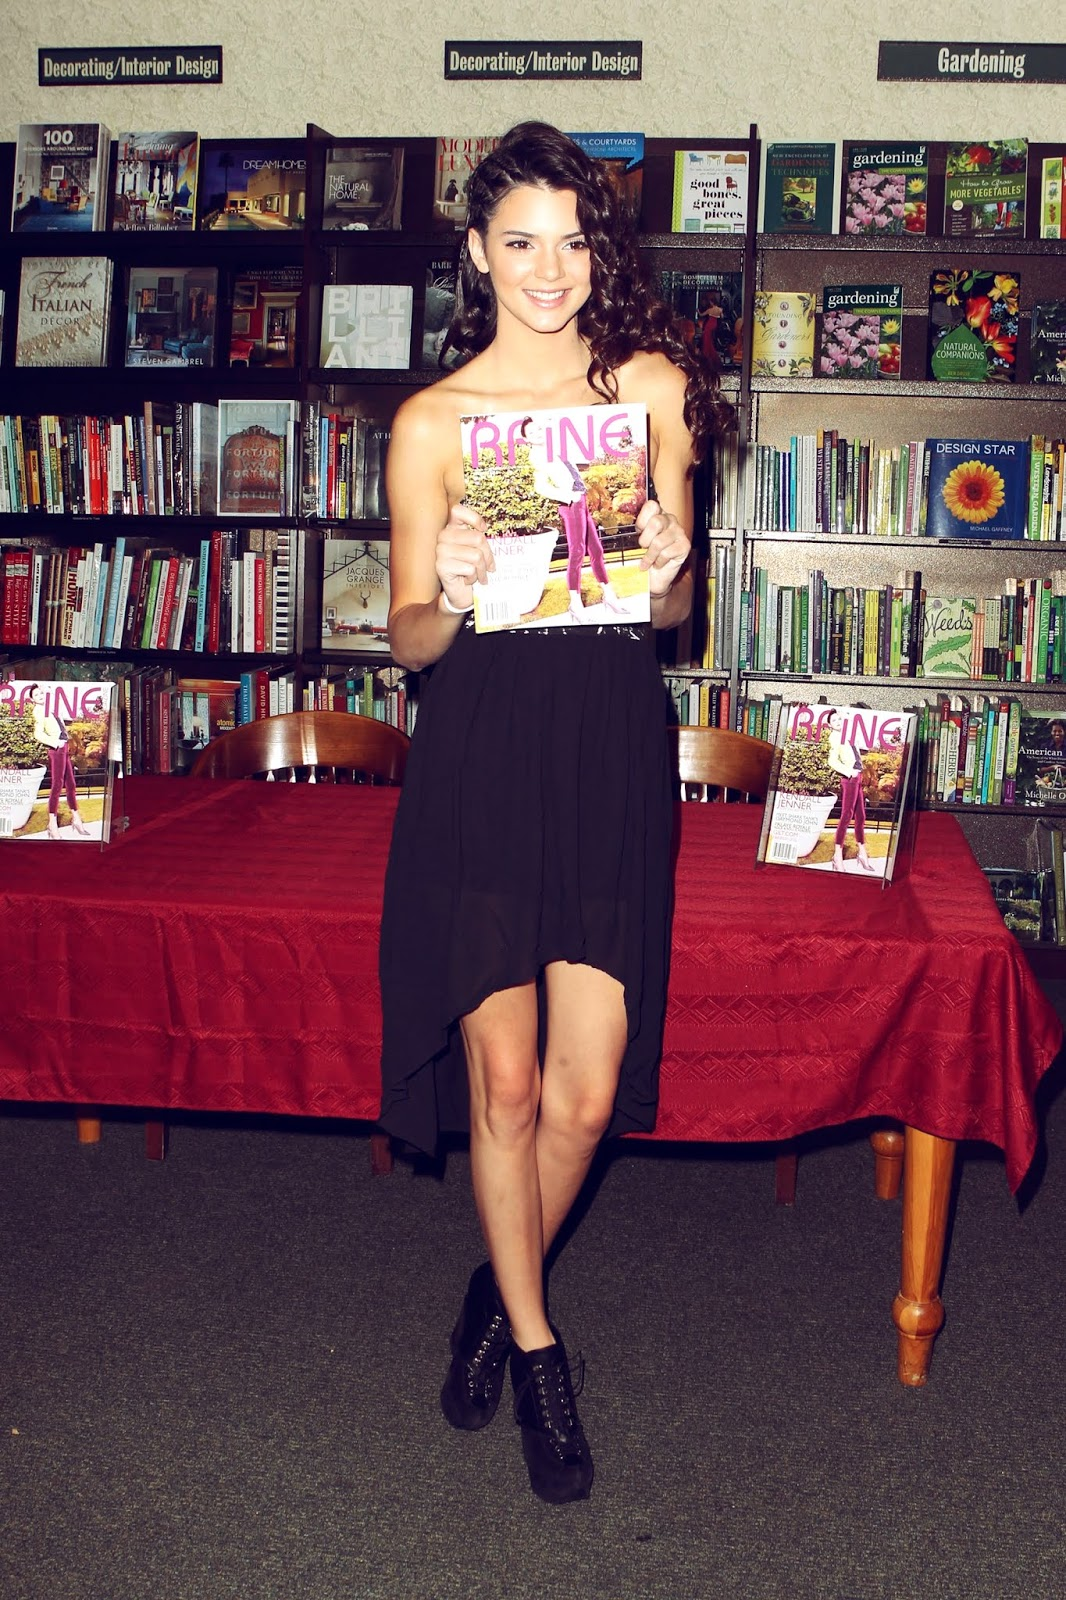 03 - Signing and Autograph RAINE Magazine at Barnes & Noble on August 18, 2012